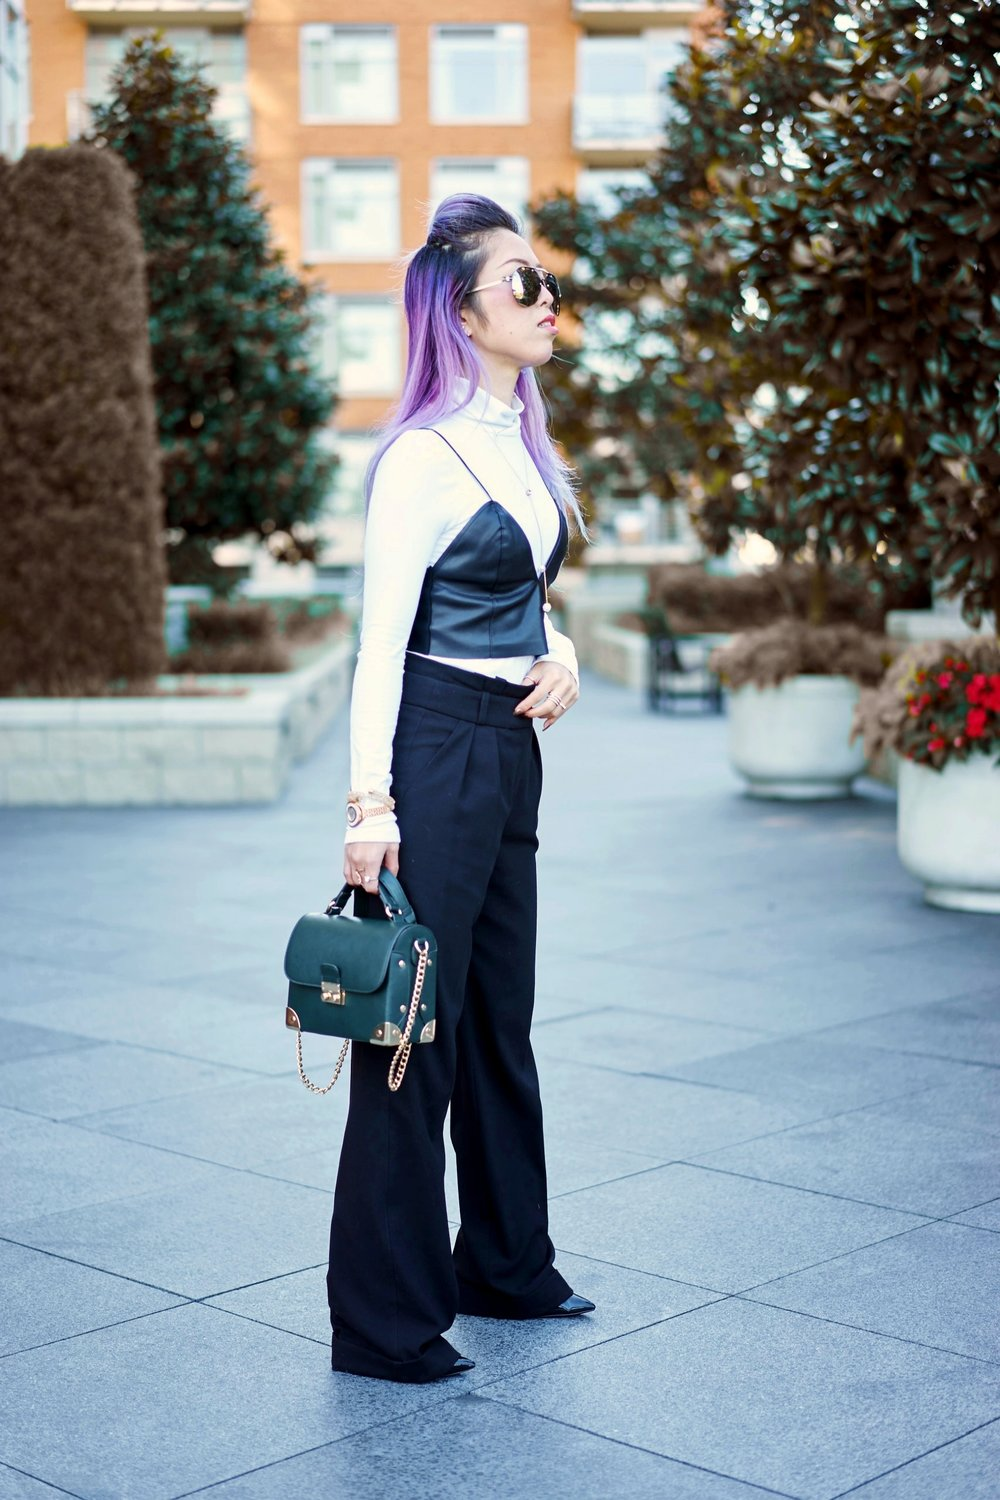 No Weekends Mirrored Aviator Sunglasses_Missguided long sleeve turtle neck bodysuit white_ZARA Leather Bralette Crop top_TOPSHOP Wide Trousers_ALDO Patent Ankle Boots_Forever 21 Boxy Bag_Swarovski Forward Necklace & Funk Necklace & Fantastic Pierced Earrings & Crystalline Oval Rose Gold Tone Bracelet Watch & Crystal & Crystaldust Bangle Double, Golden Crystal_Aikas Love Closet_Seattle Fashion Blogger_Japanese_Lavender Hair_Colored Hair